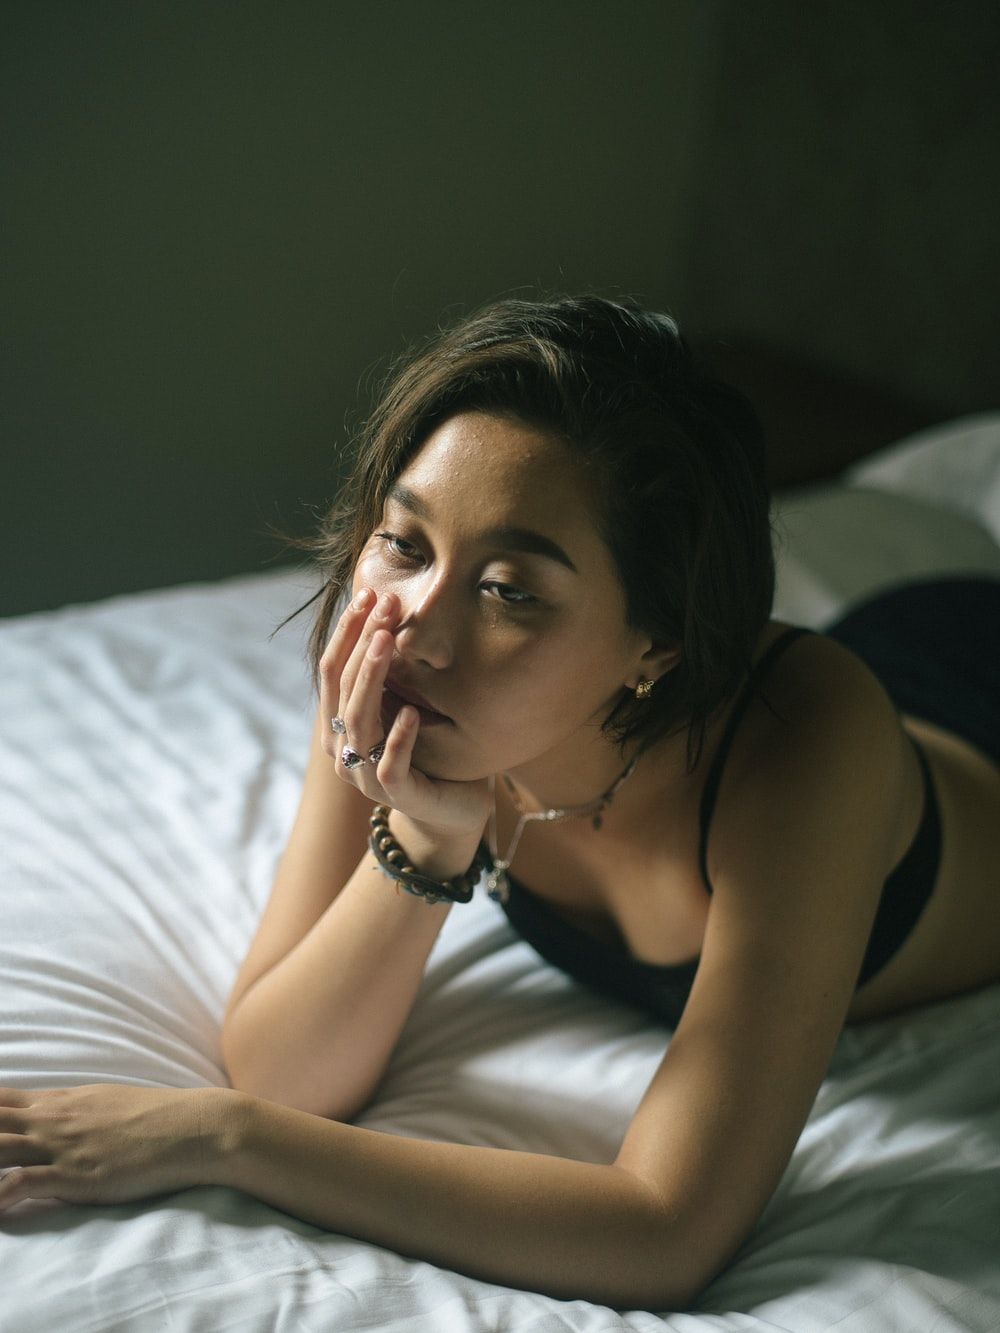 woman lying on bed inside room